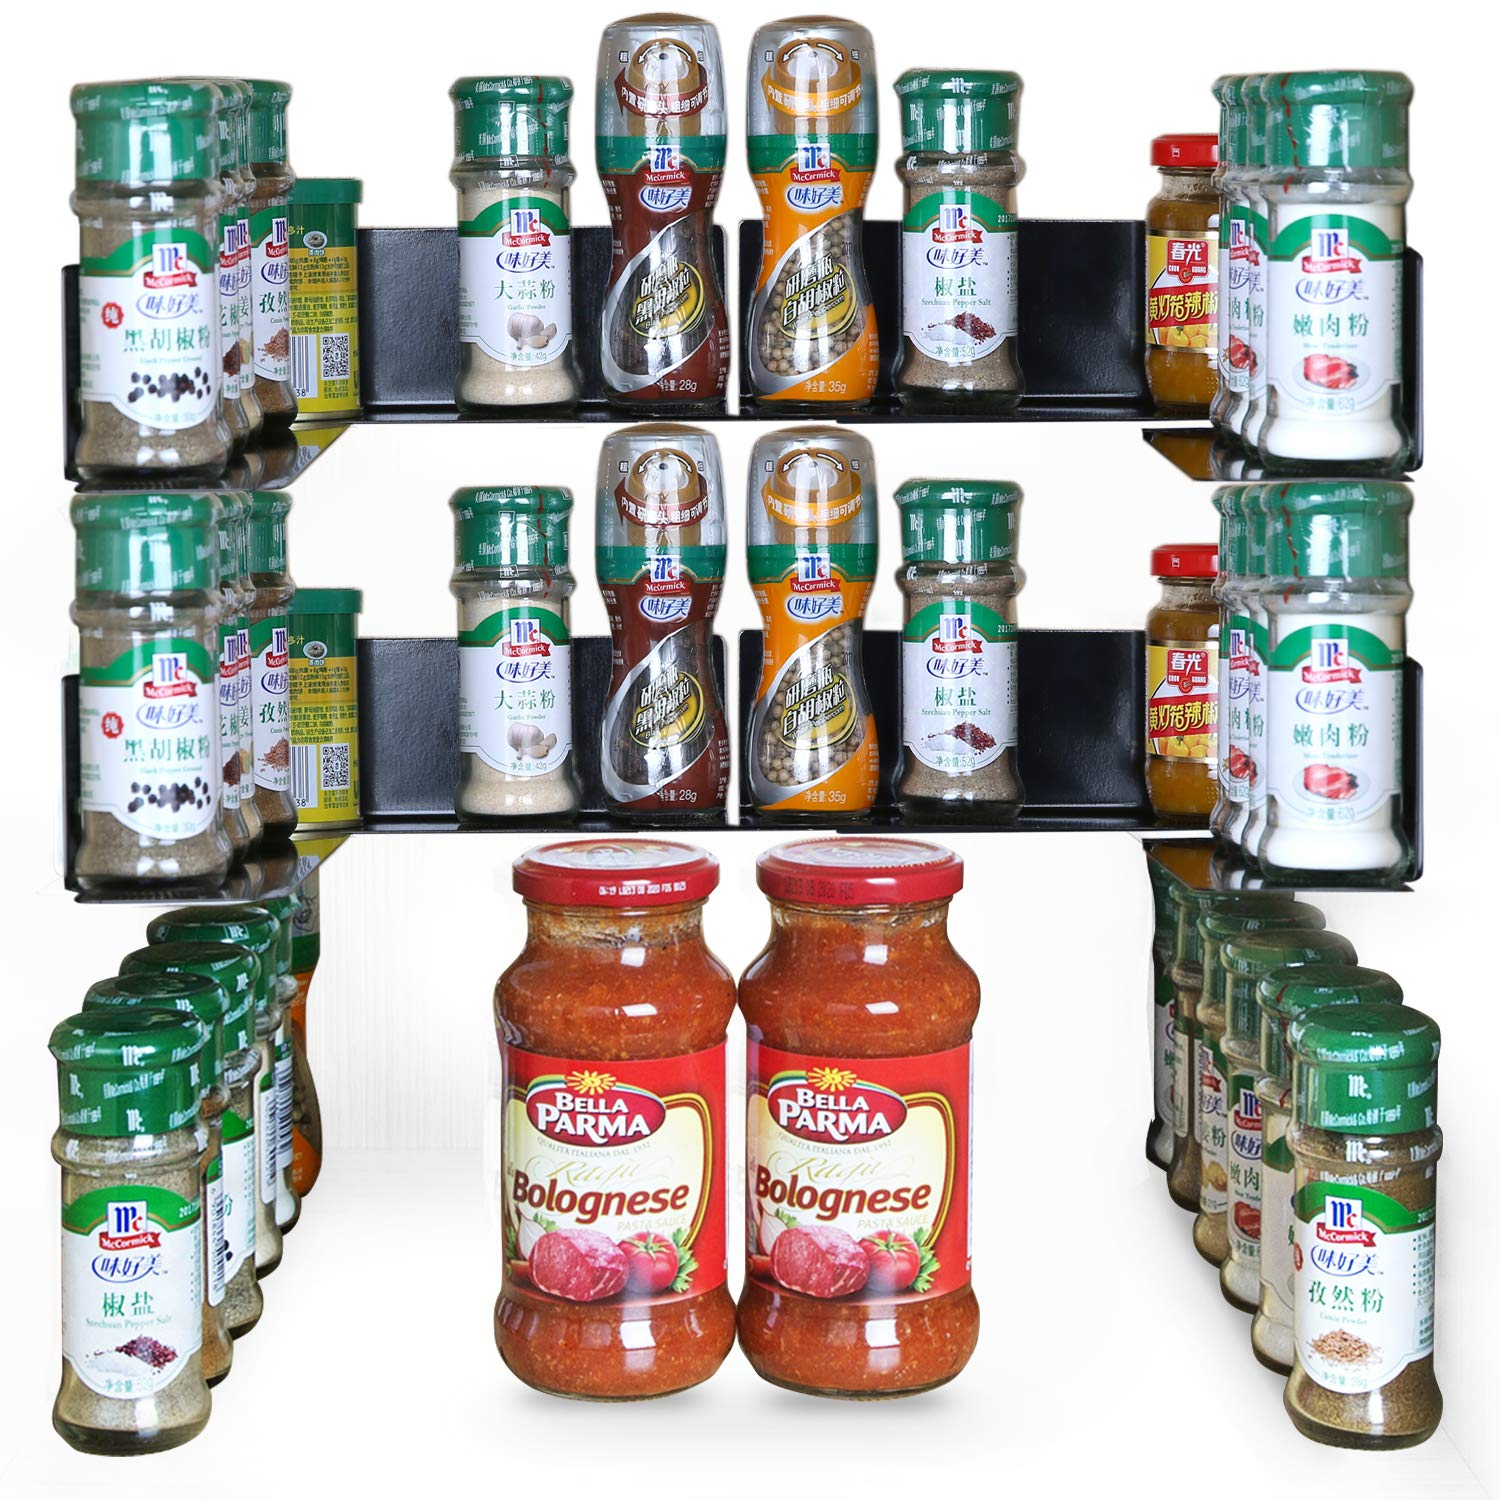 """TJ.MOREE Invisible Spicy Jar Shelf 3M Adhesive Spice Organizer Metal Stackable Kitchen Cabinet 8.9"""" Length (8 pack)"""